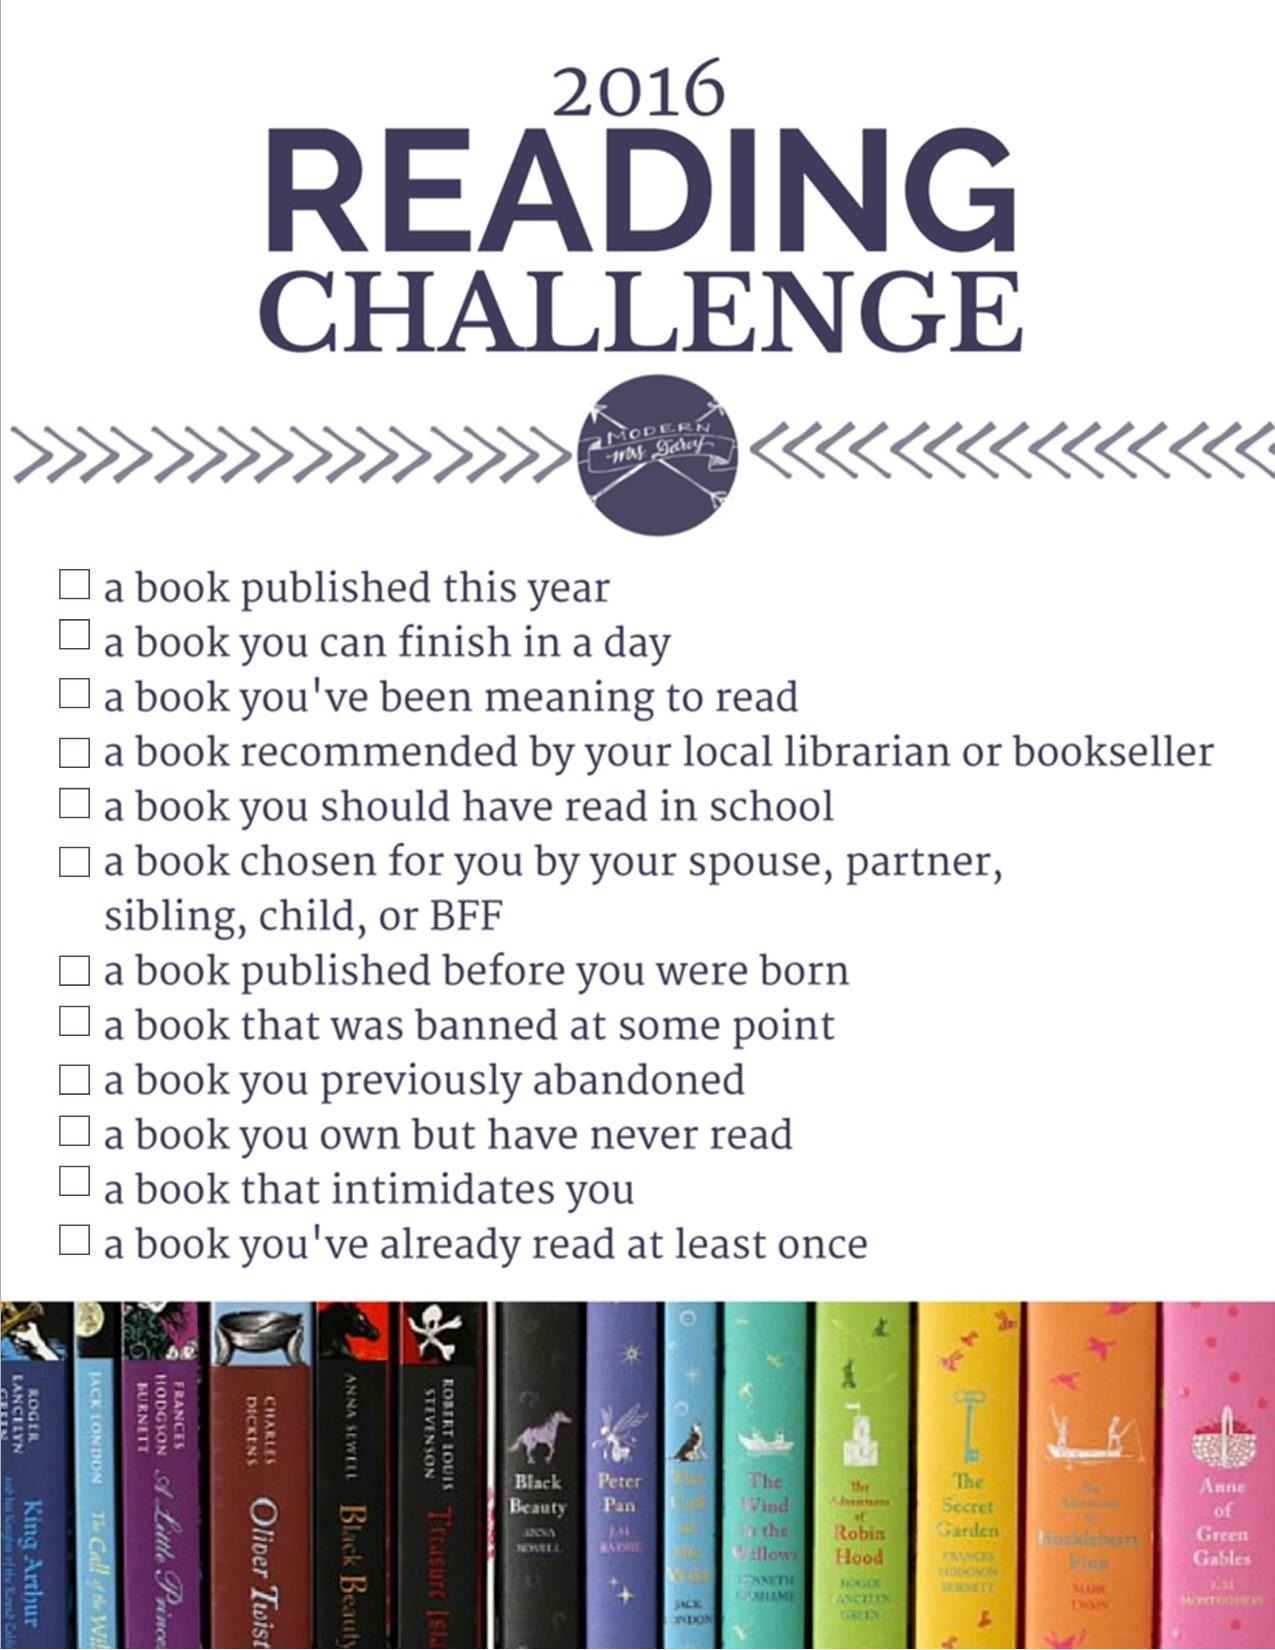 MMD-2016-Reading-Challenge | One of my 2016 Reading Goals